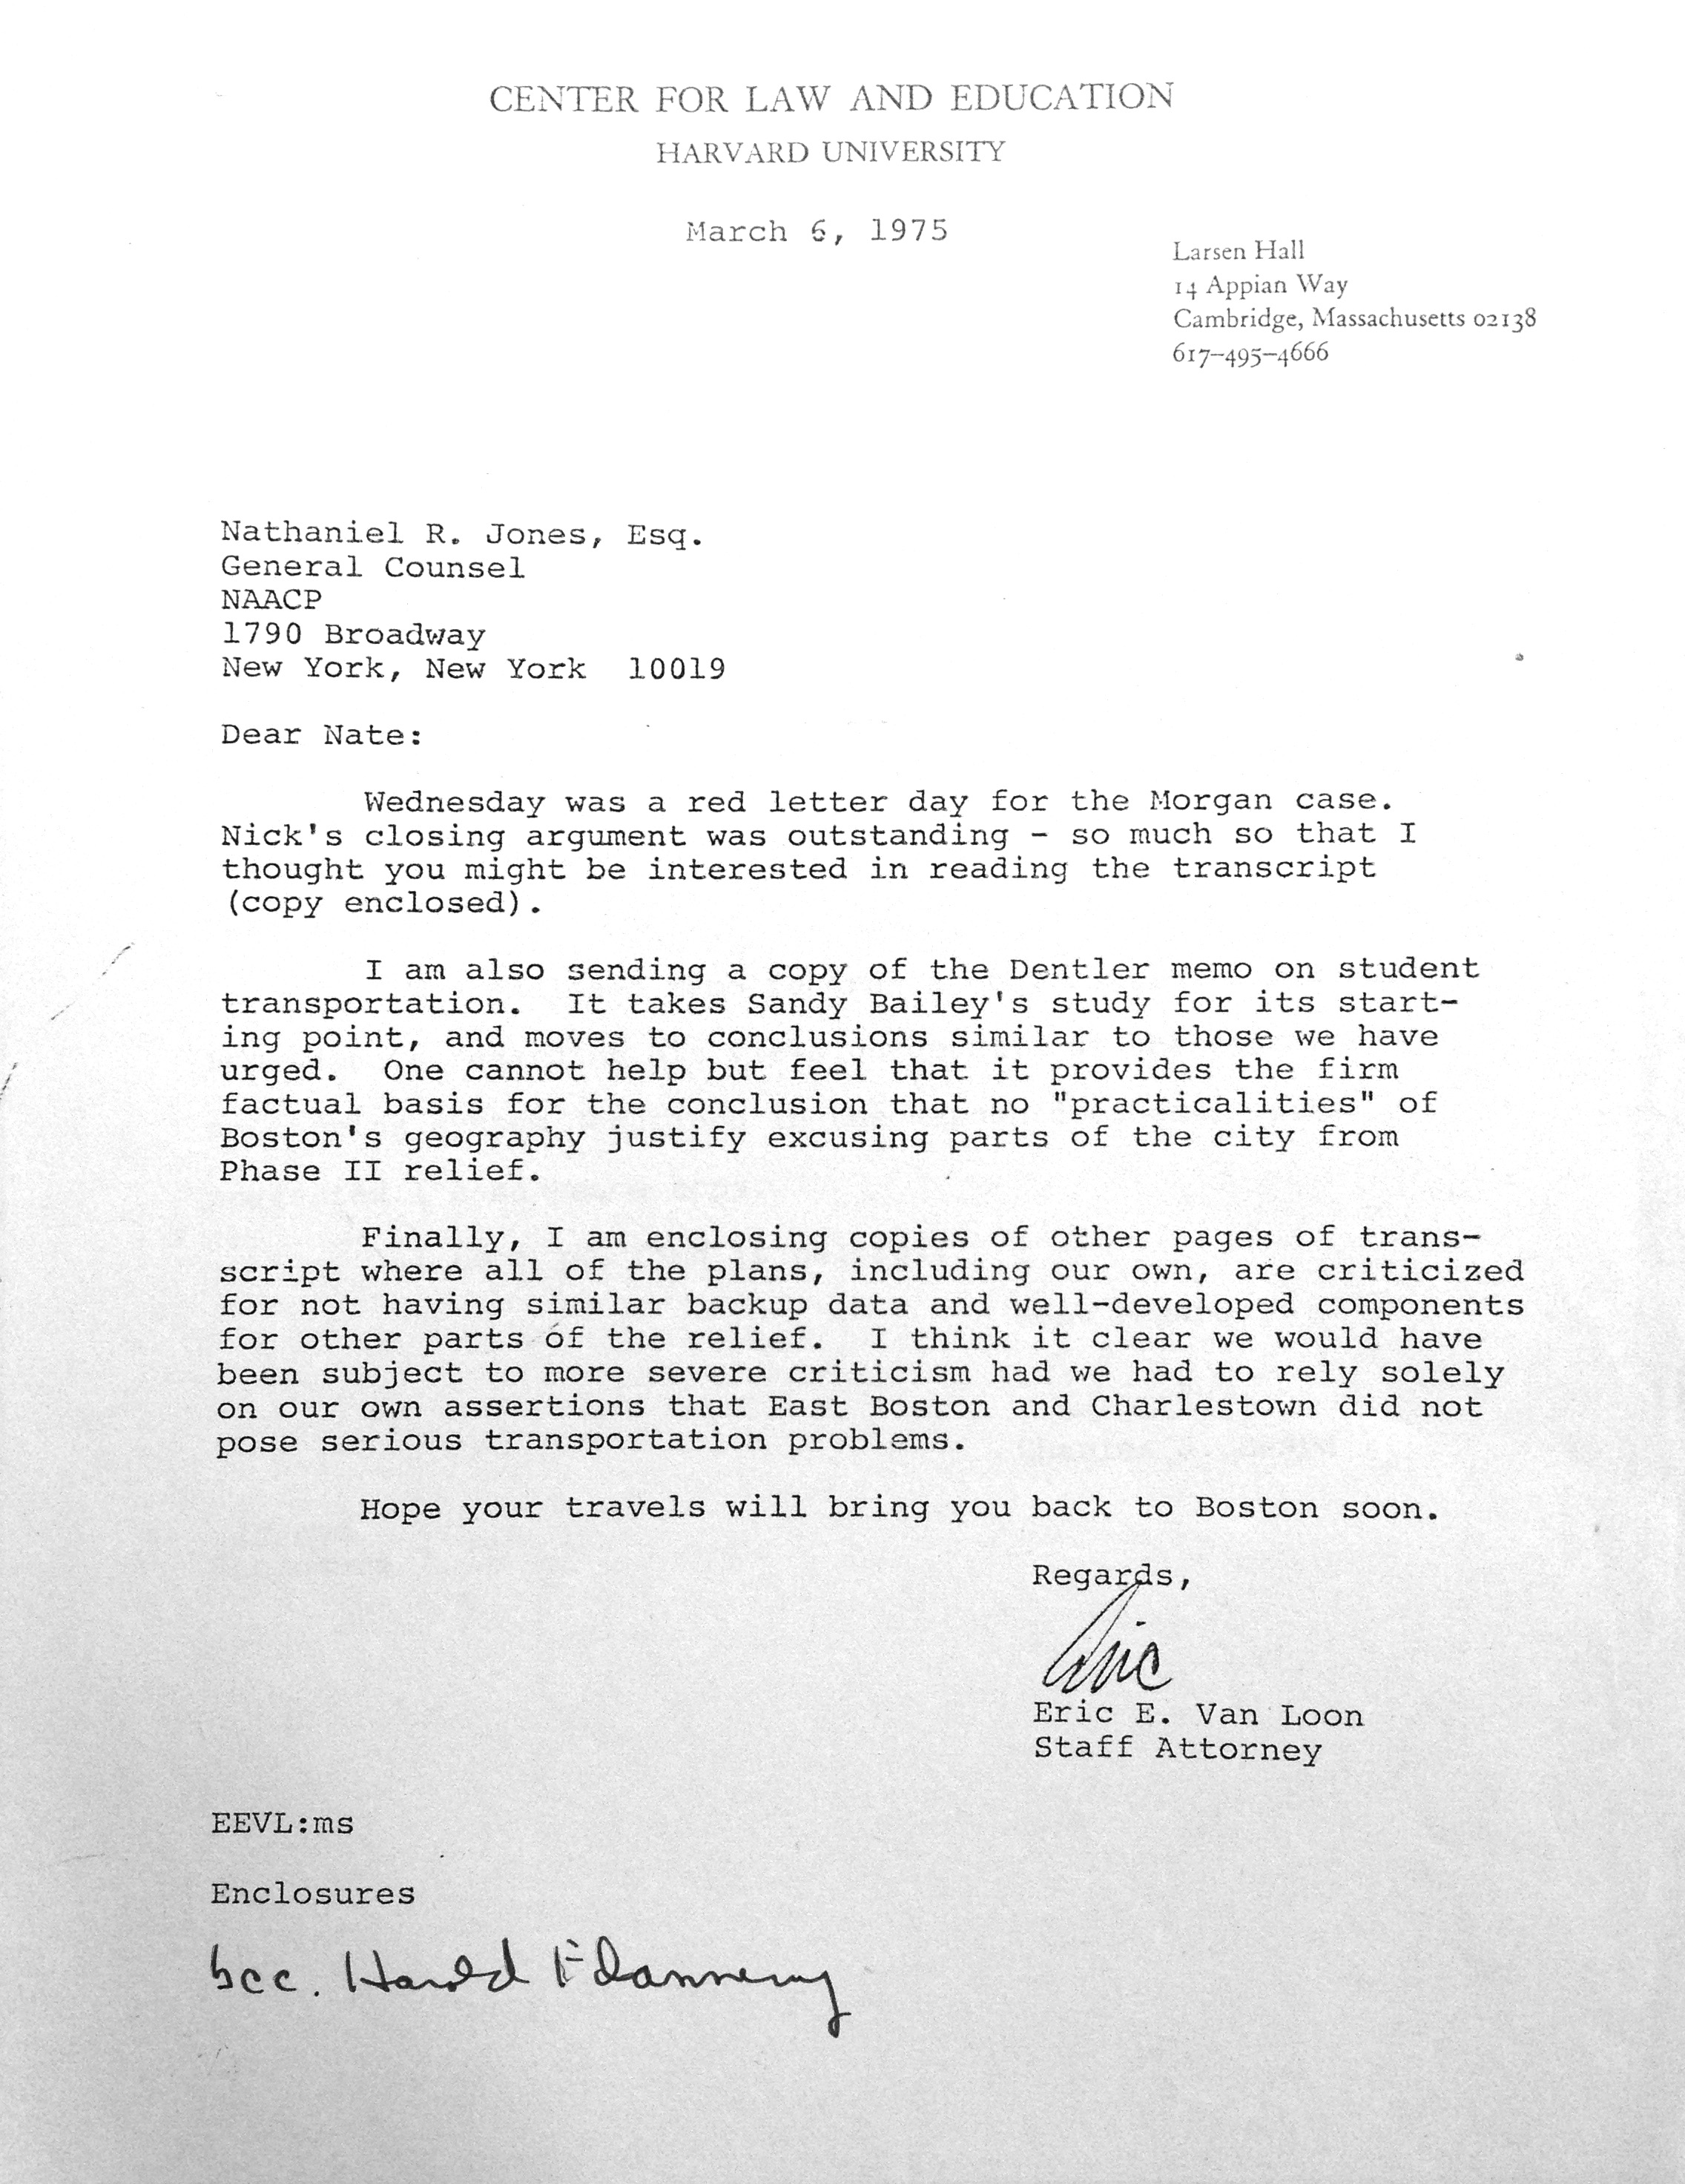 Center for Law and Education: Morgan v. Hennigan case records, NAACP correspondence, 1975